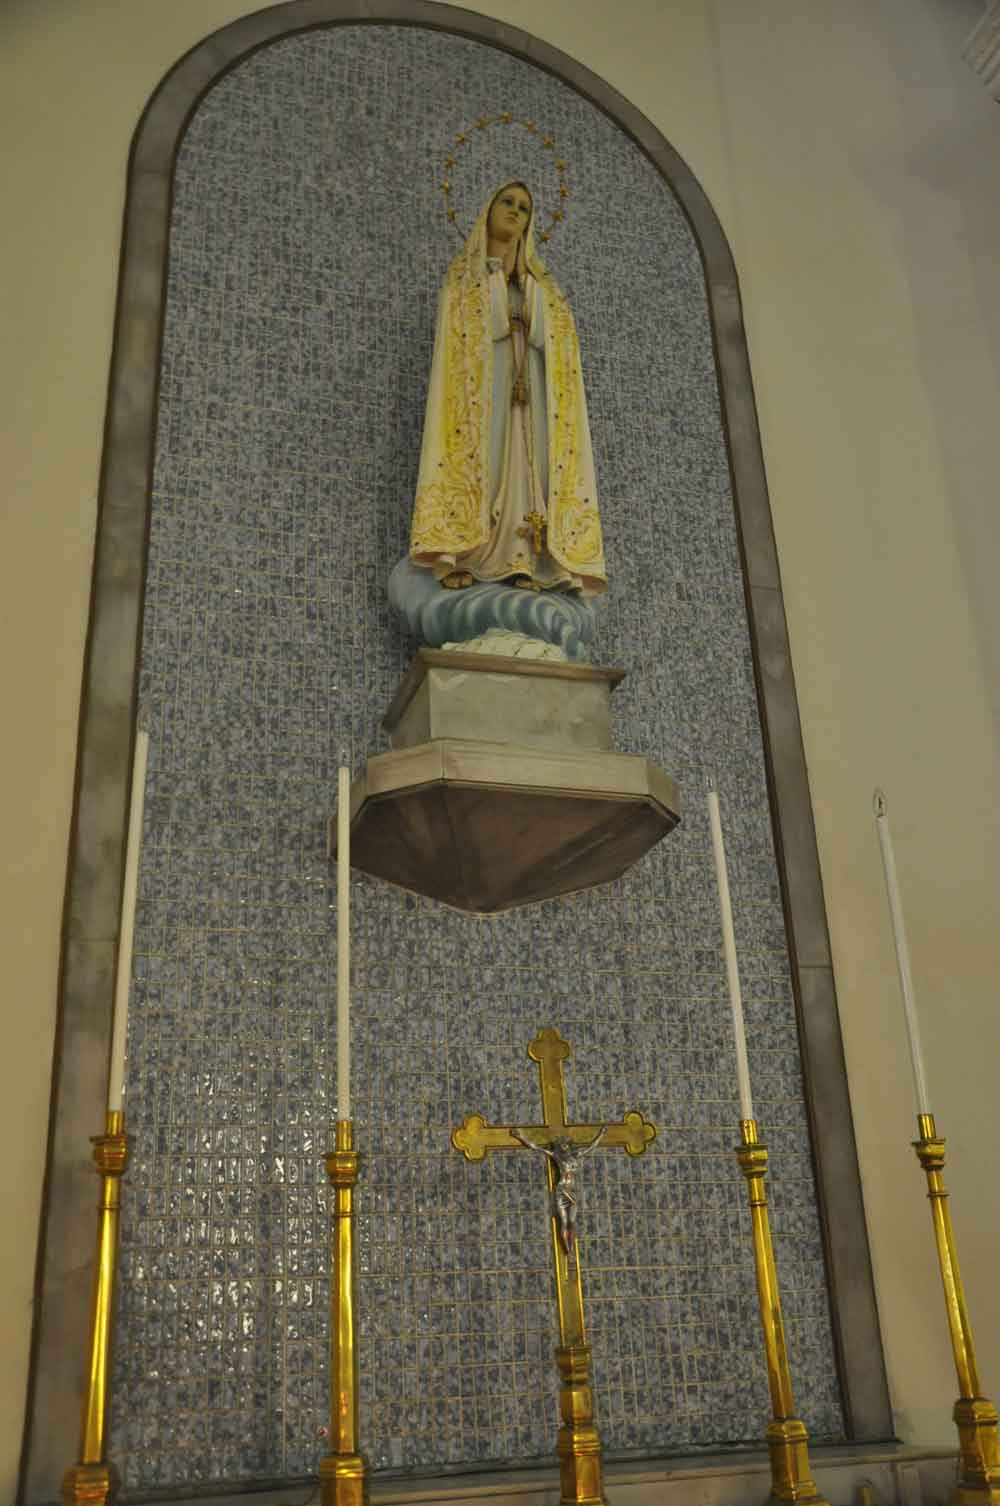 Virgin Mary with candles at St. Anthony's Church Macau